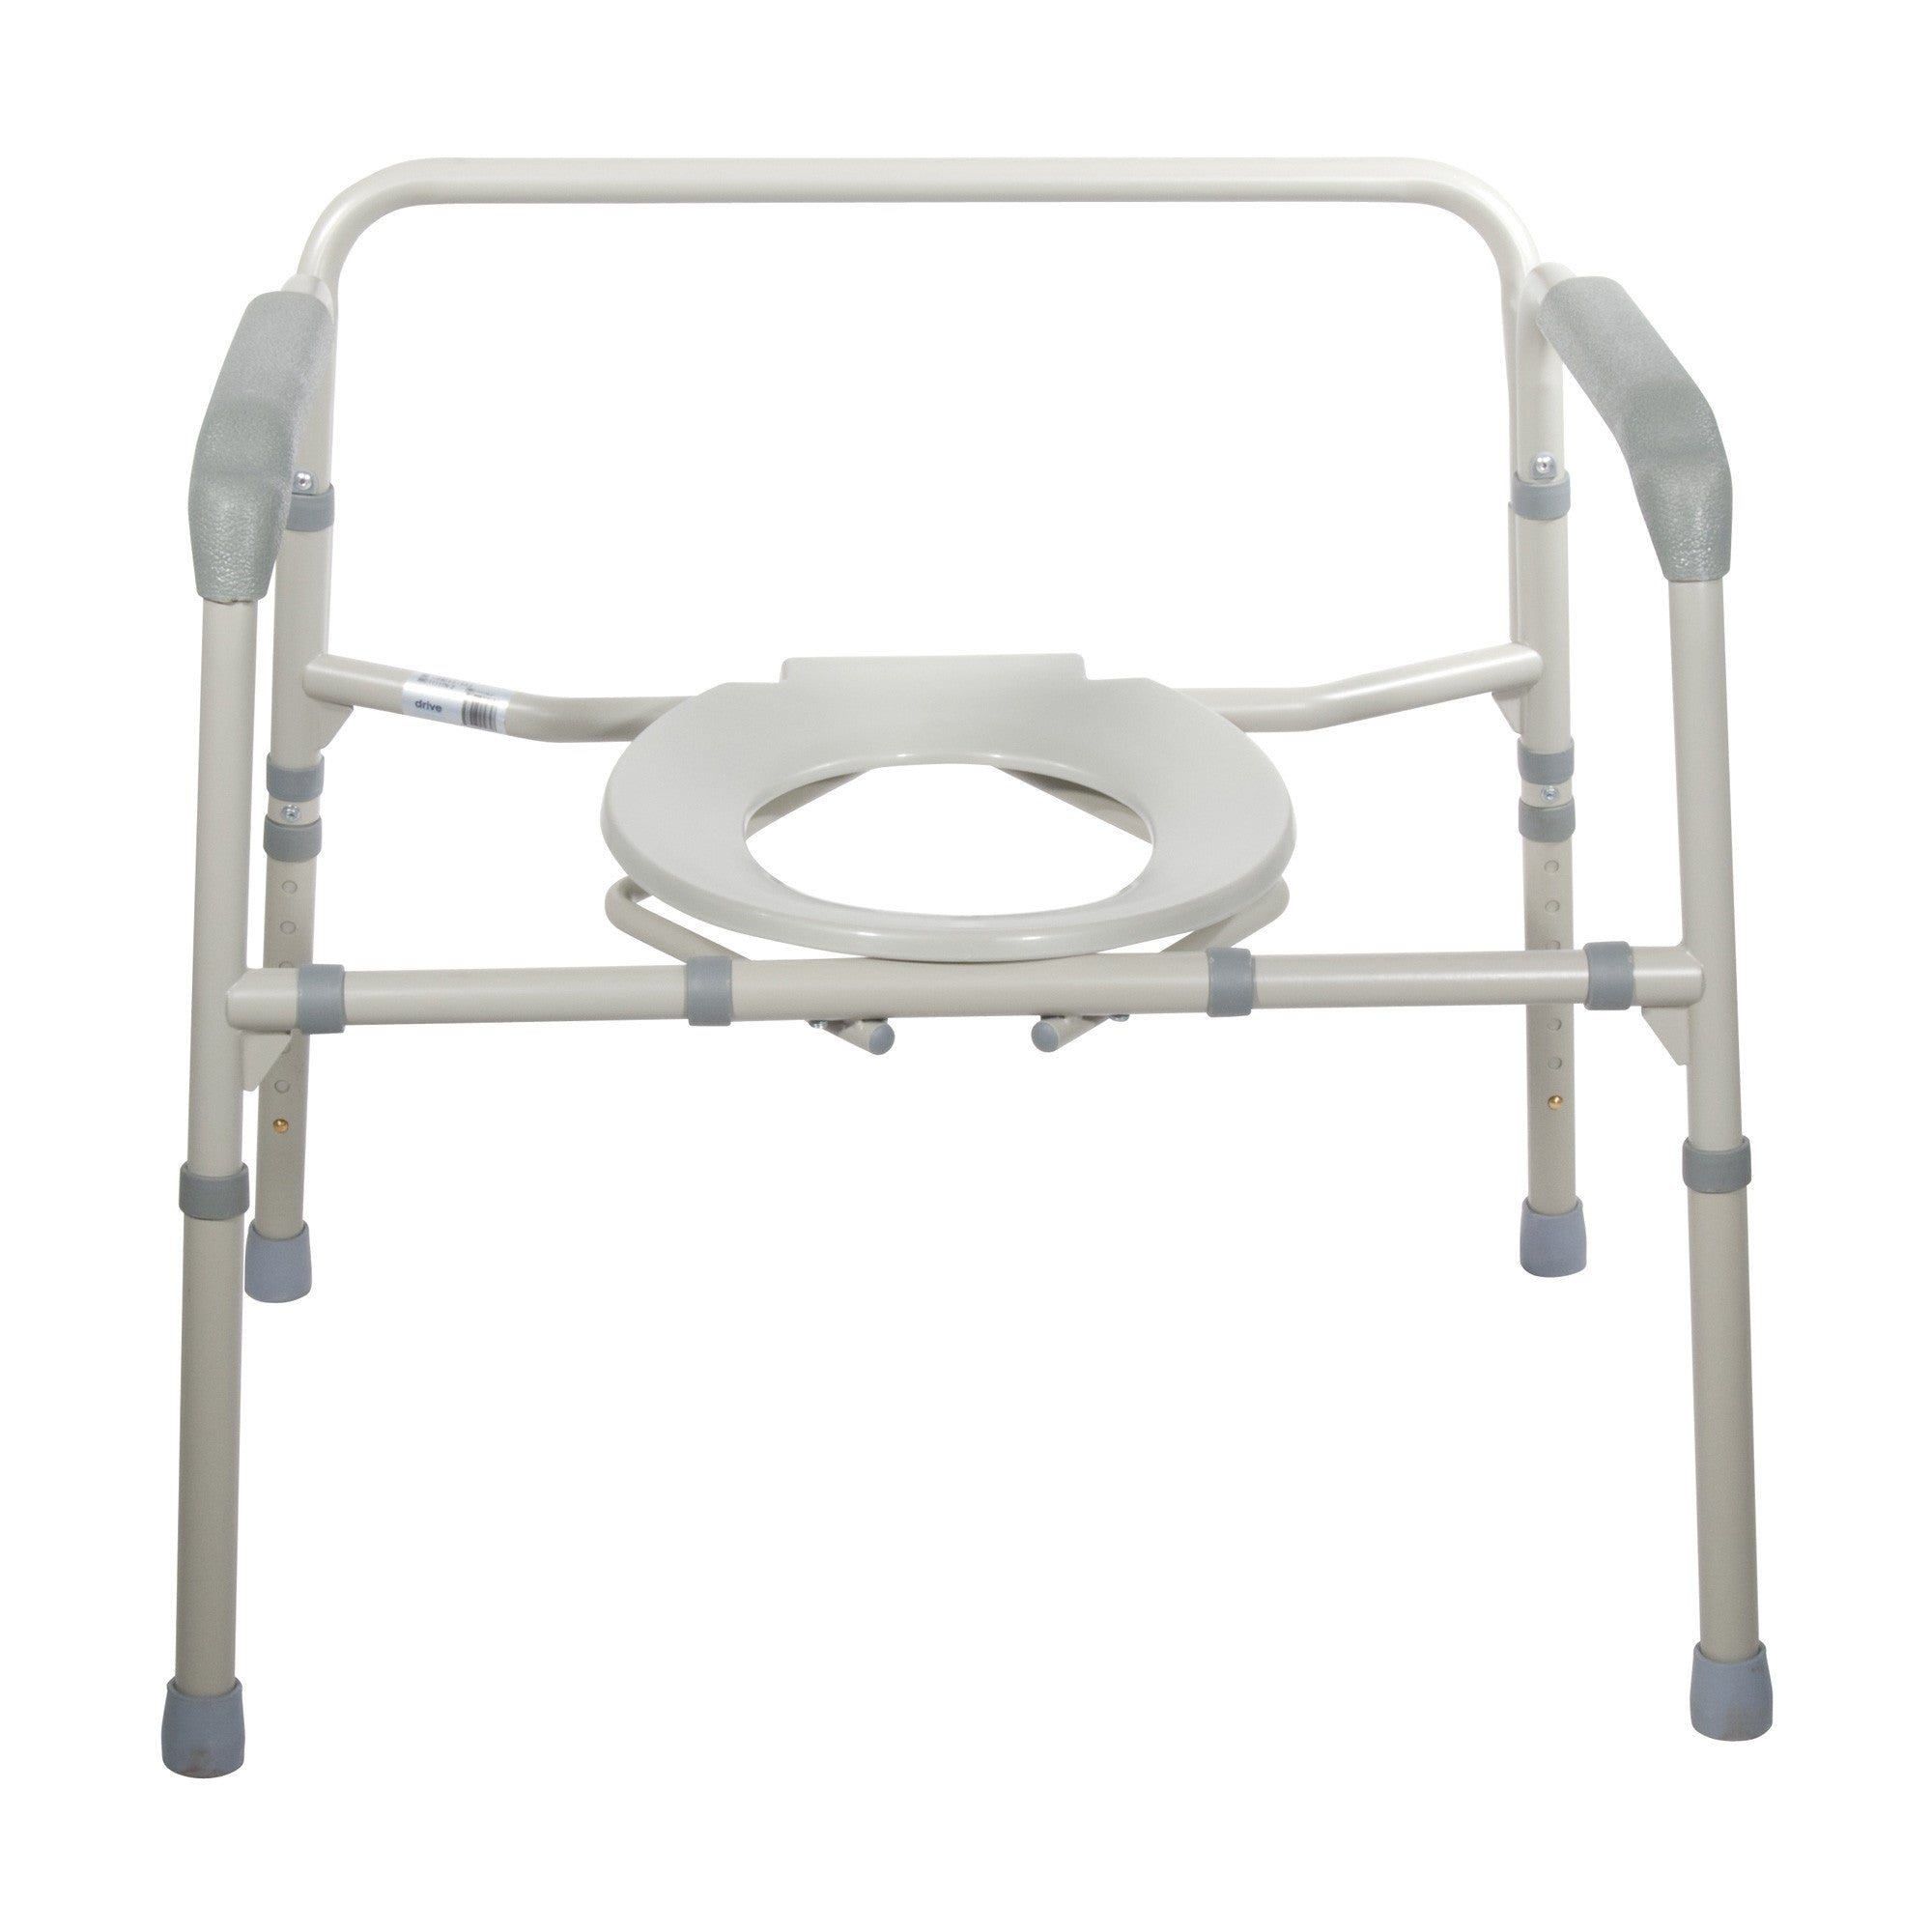 Portable commode folding bedside handicap adult toilet potty chair - Heavy Duty Bariatric Folding Bedside Commode Chair